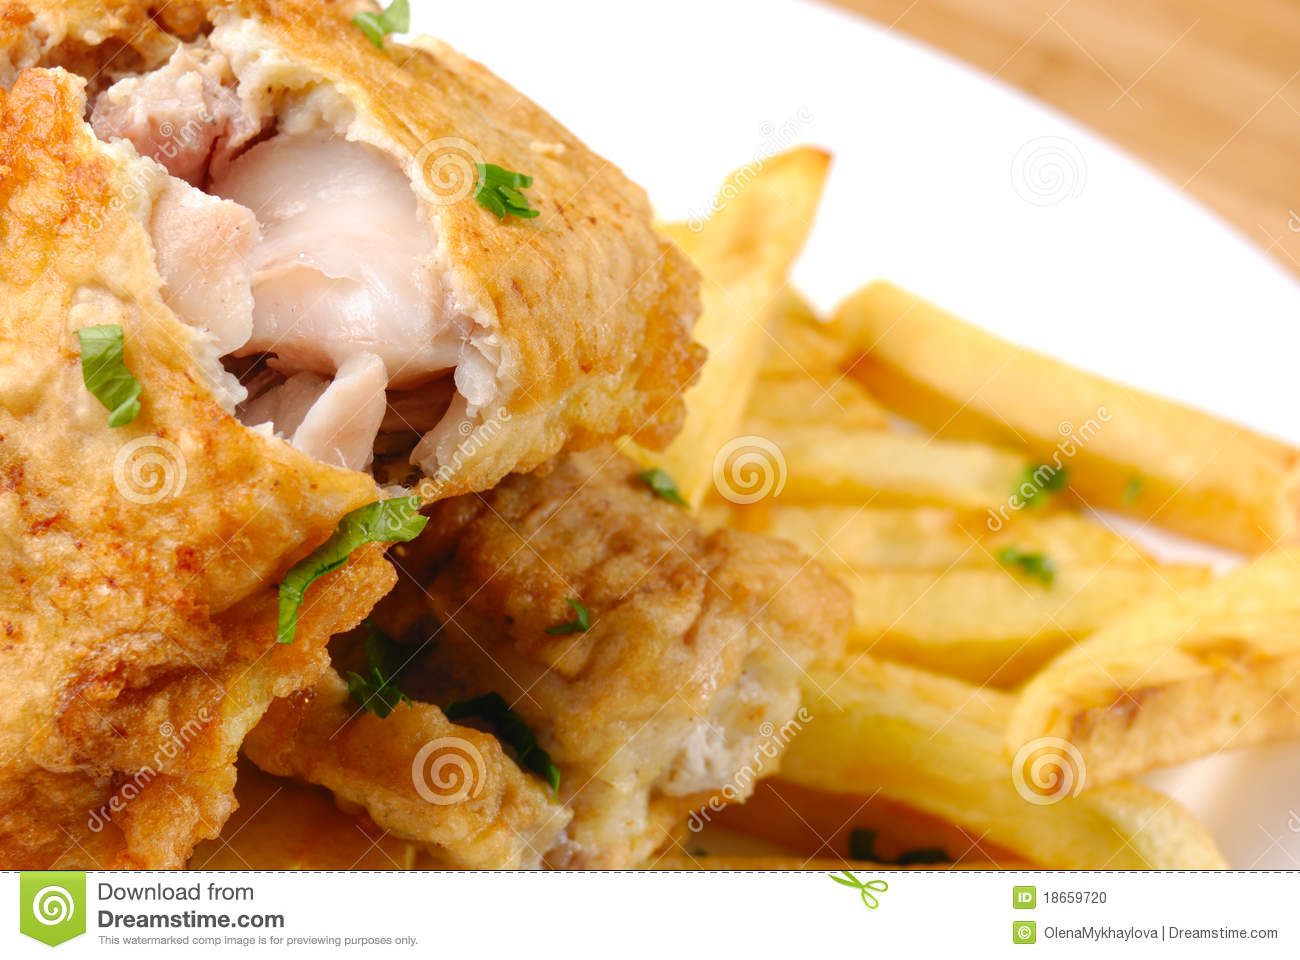 Fried fish and chips stock photo image 18659720 for Wave fish and chips